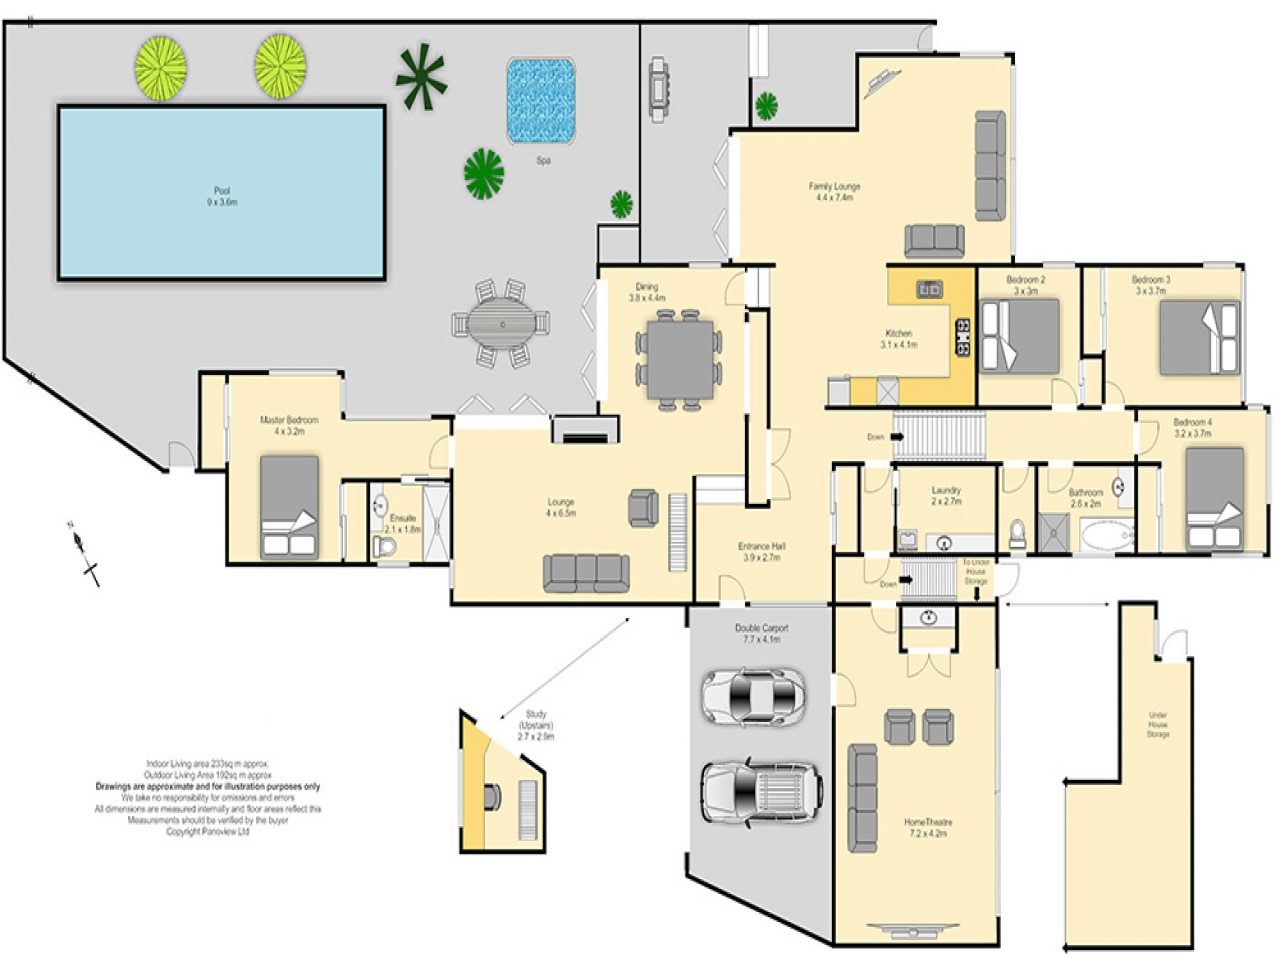 Big house floors plan designs house blueprint floor plan for Big house plans